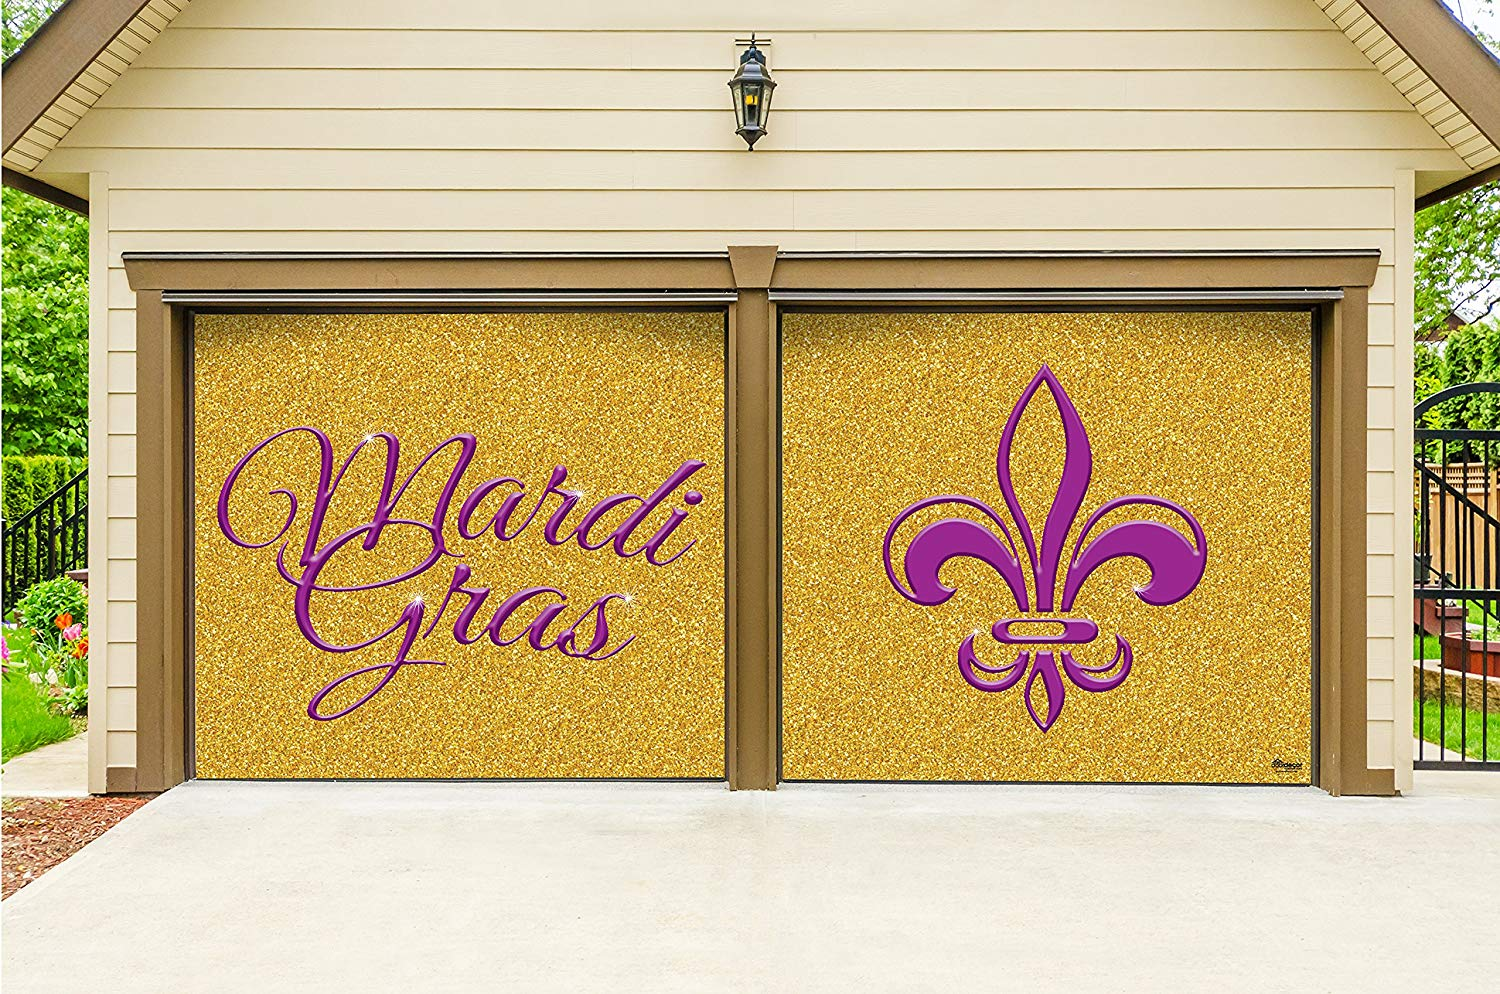 Victory Corps Outdoor Mardi Gras Decorations 2 Car Split Garage Door Banner Cover Mural - Mardi Gras Gold Glitter, Two 7'x 8' Graphic Kits - The Original Mardi Gras Supplies Garage Door Banner Decor